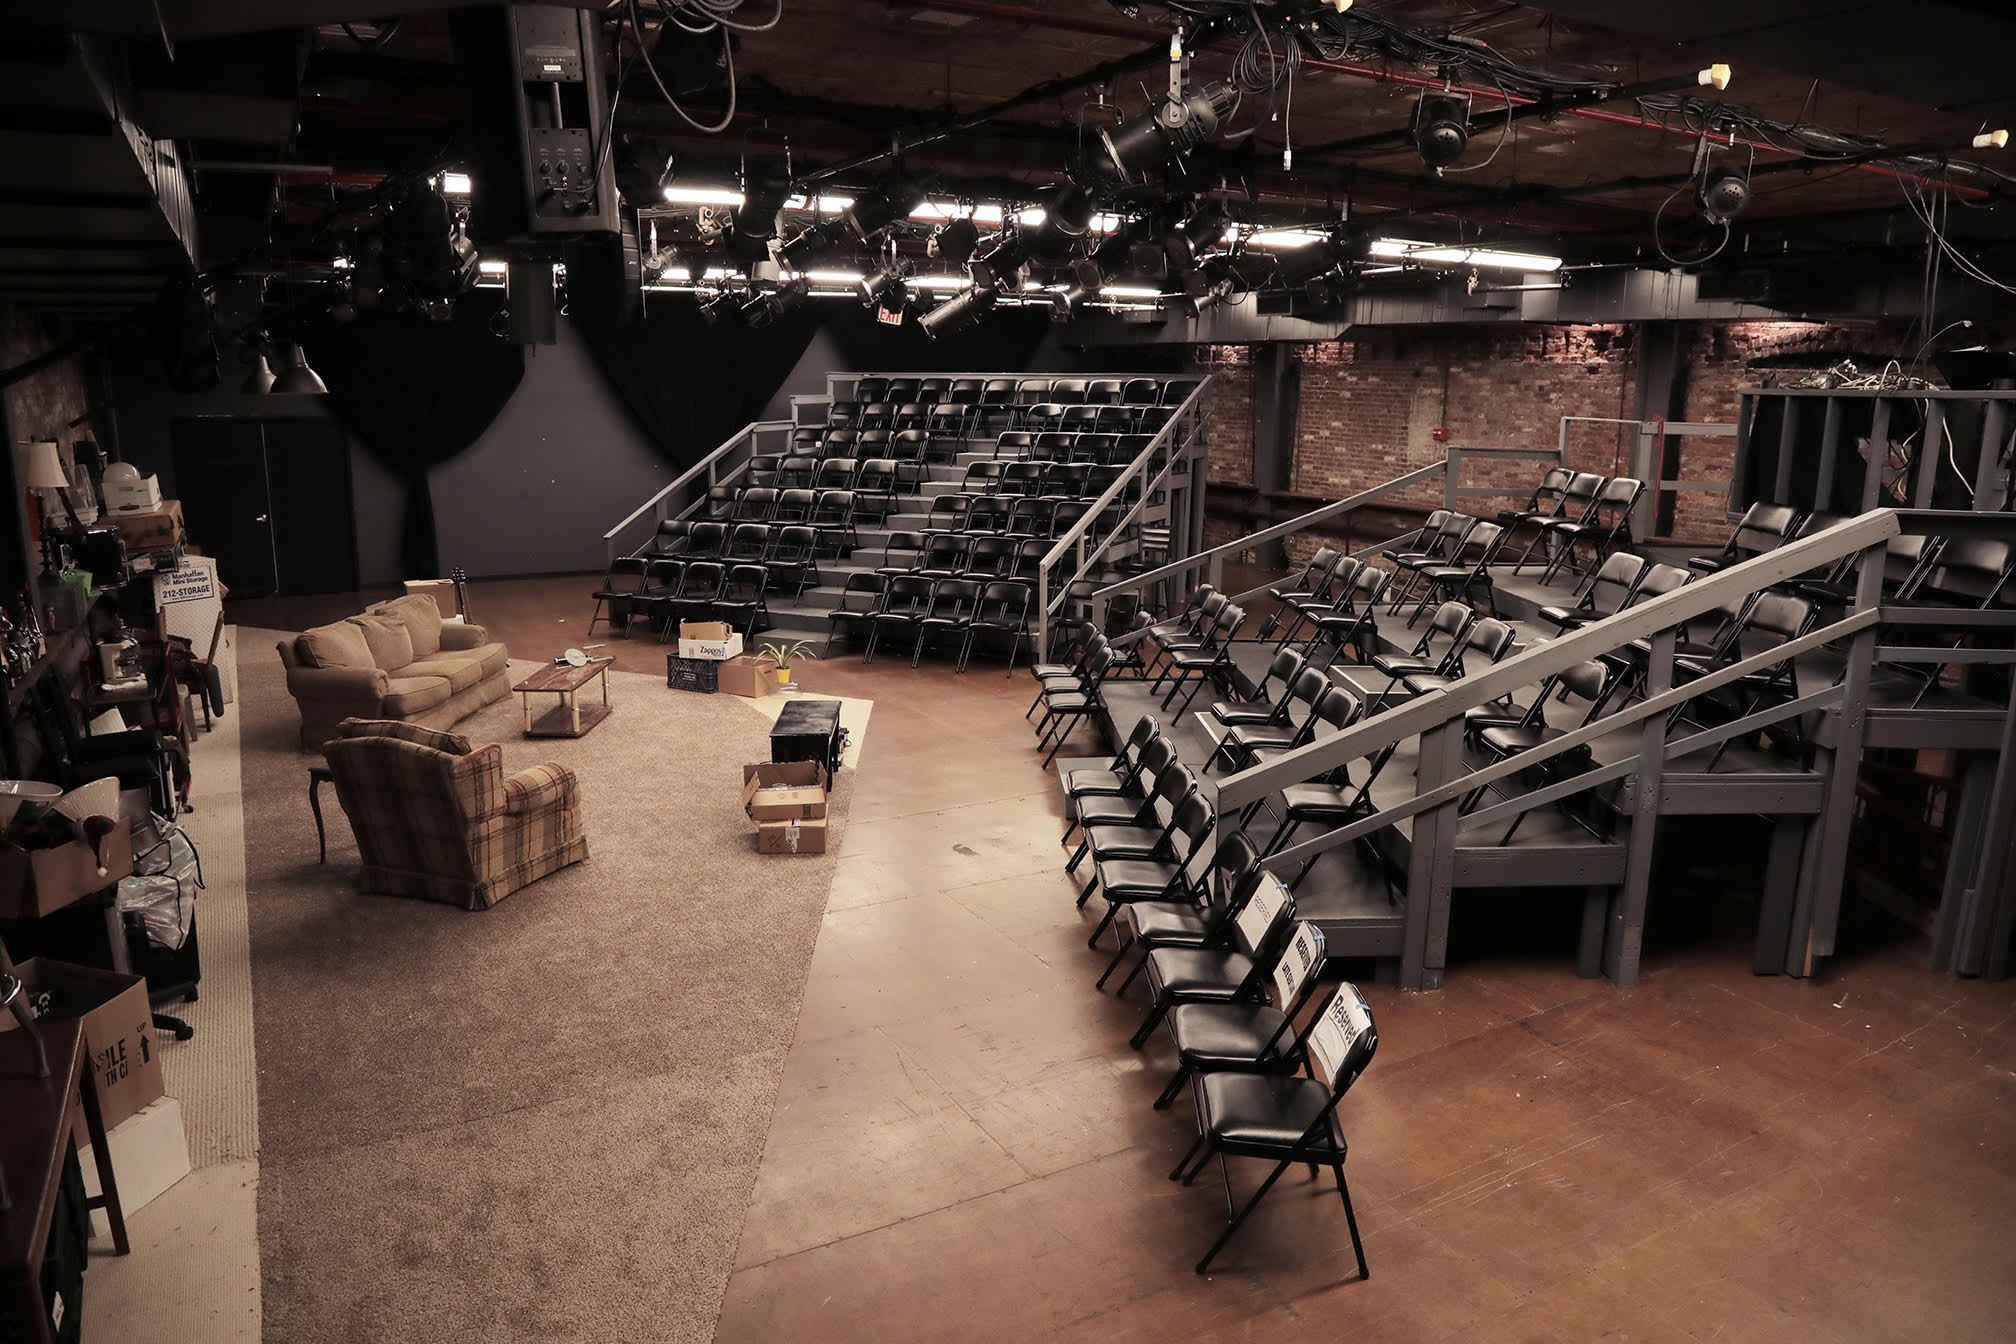 A performance space with one black wall, two brick walls, and a wooden floor. There are risers and black folding chairs set up for the audience. On stage, there is a beige carpet with one couch, an armchair, a table, and cardboard boxes. There are theatrical lighting fixtures set up on the ceiling.